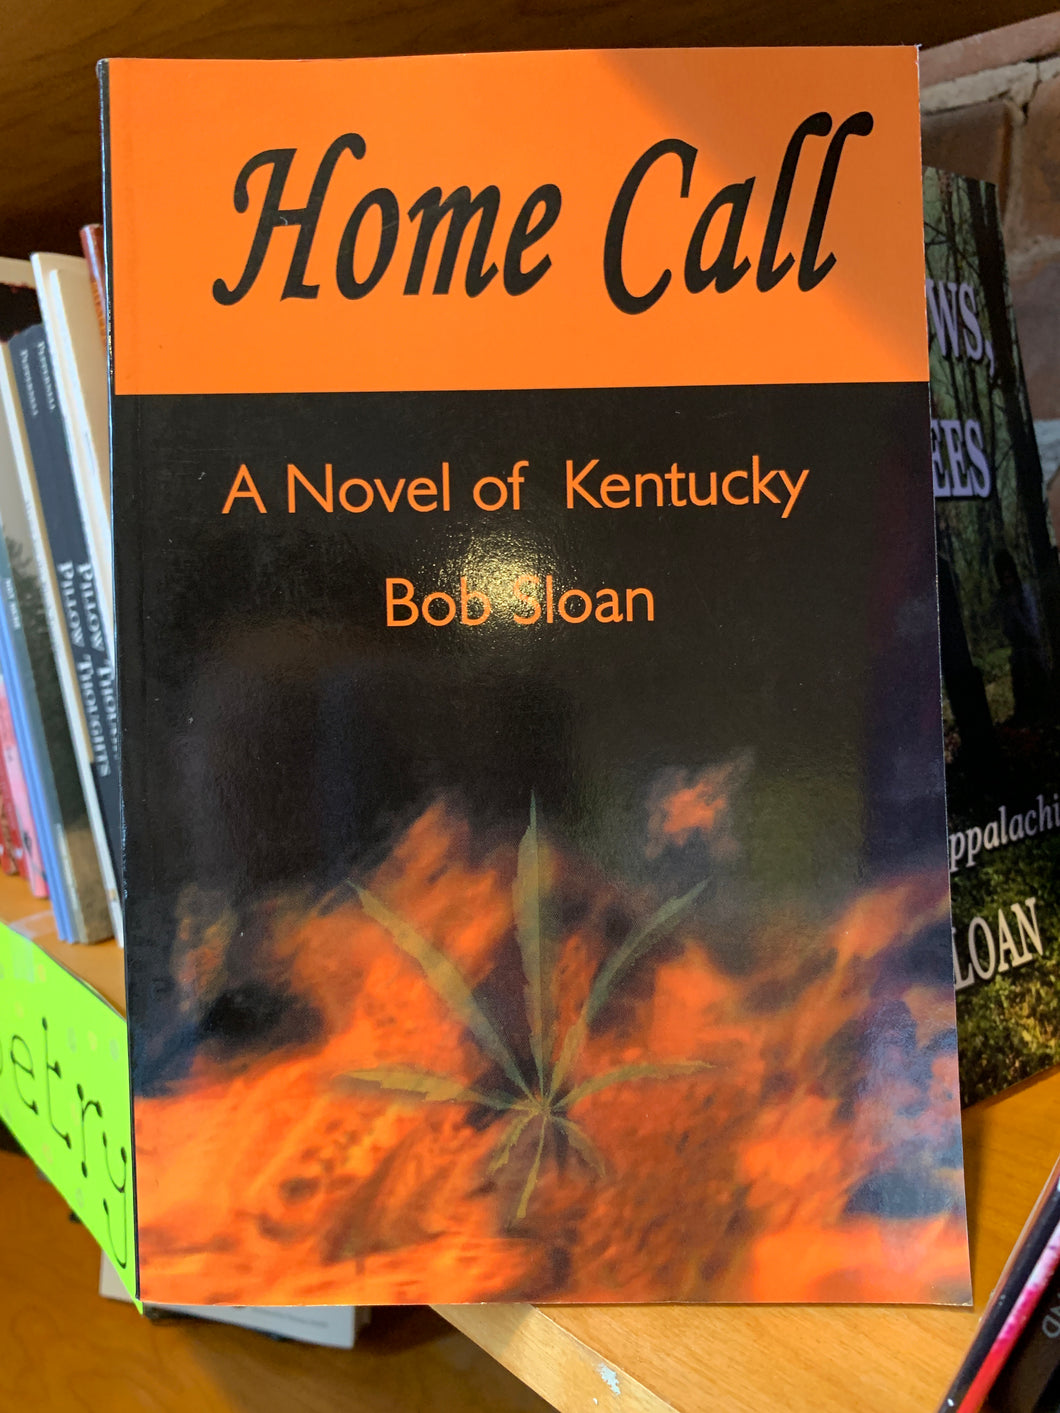 Home call a novel of Kentucky